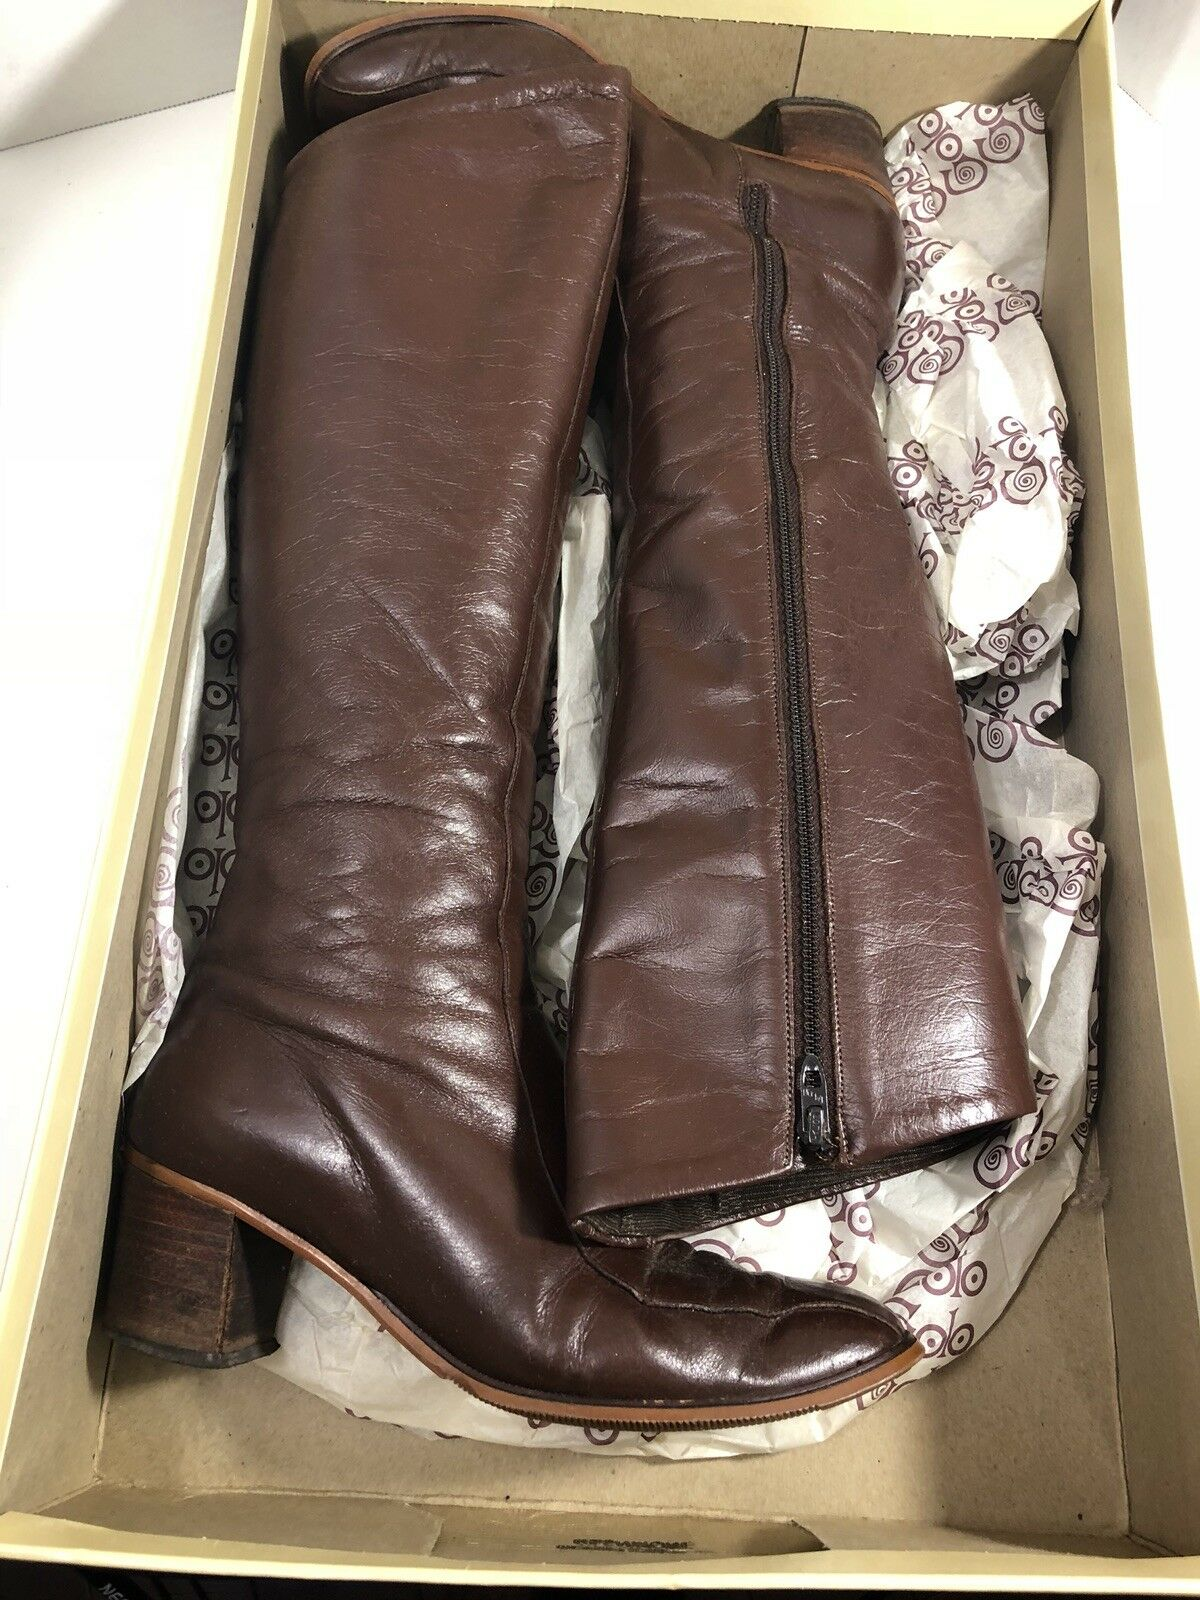 Golo Tall Riding Boots Glenmore Brown Leather Zipper Side 2  Heel SZ 6.5 w box